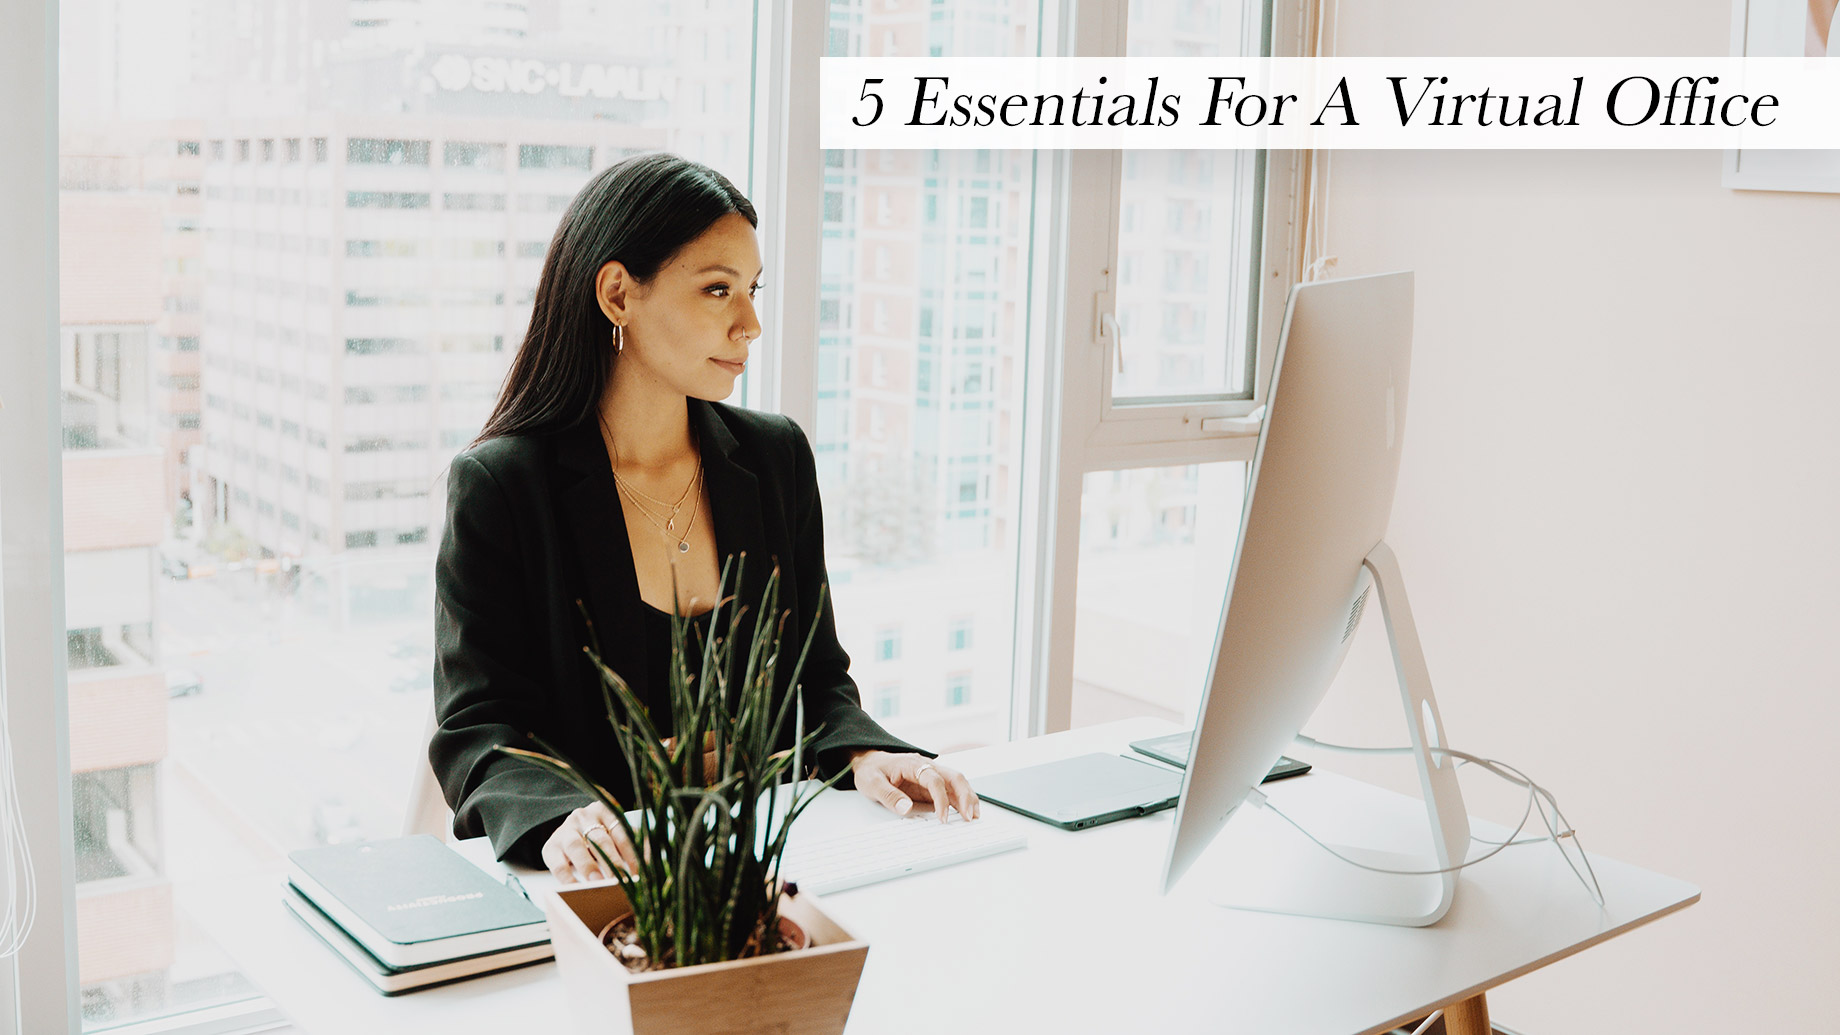 5 Essentials For A Virtual Office